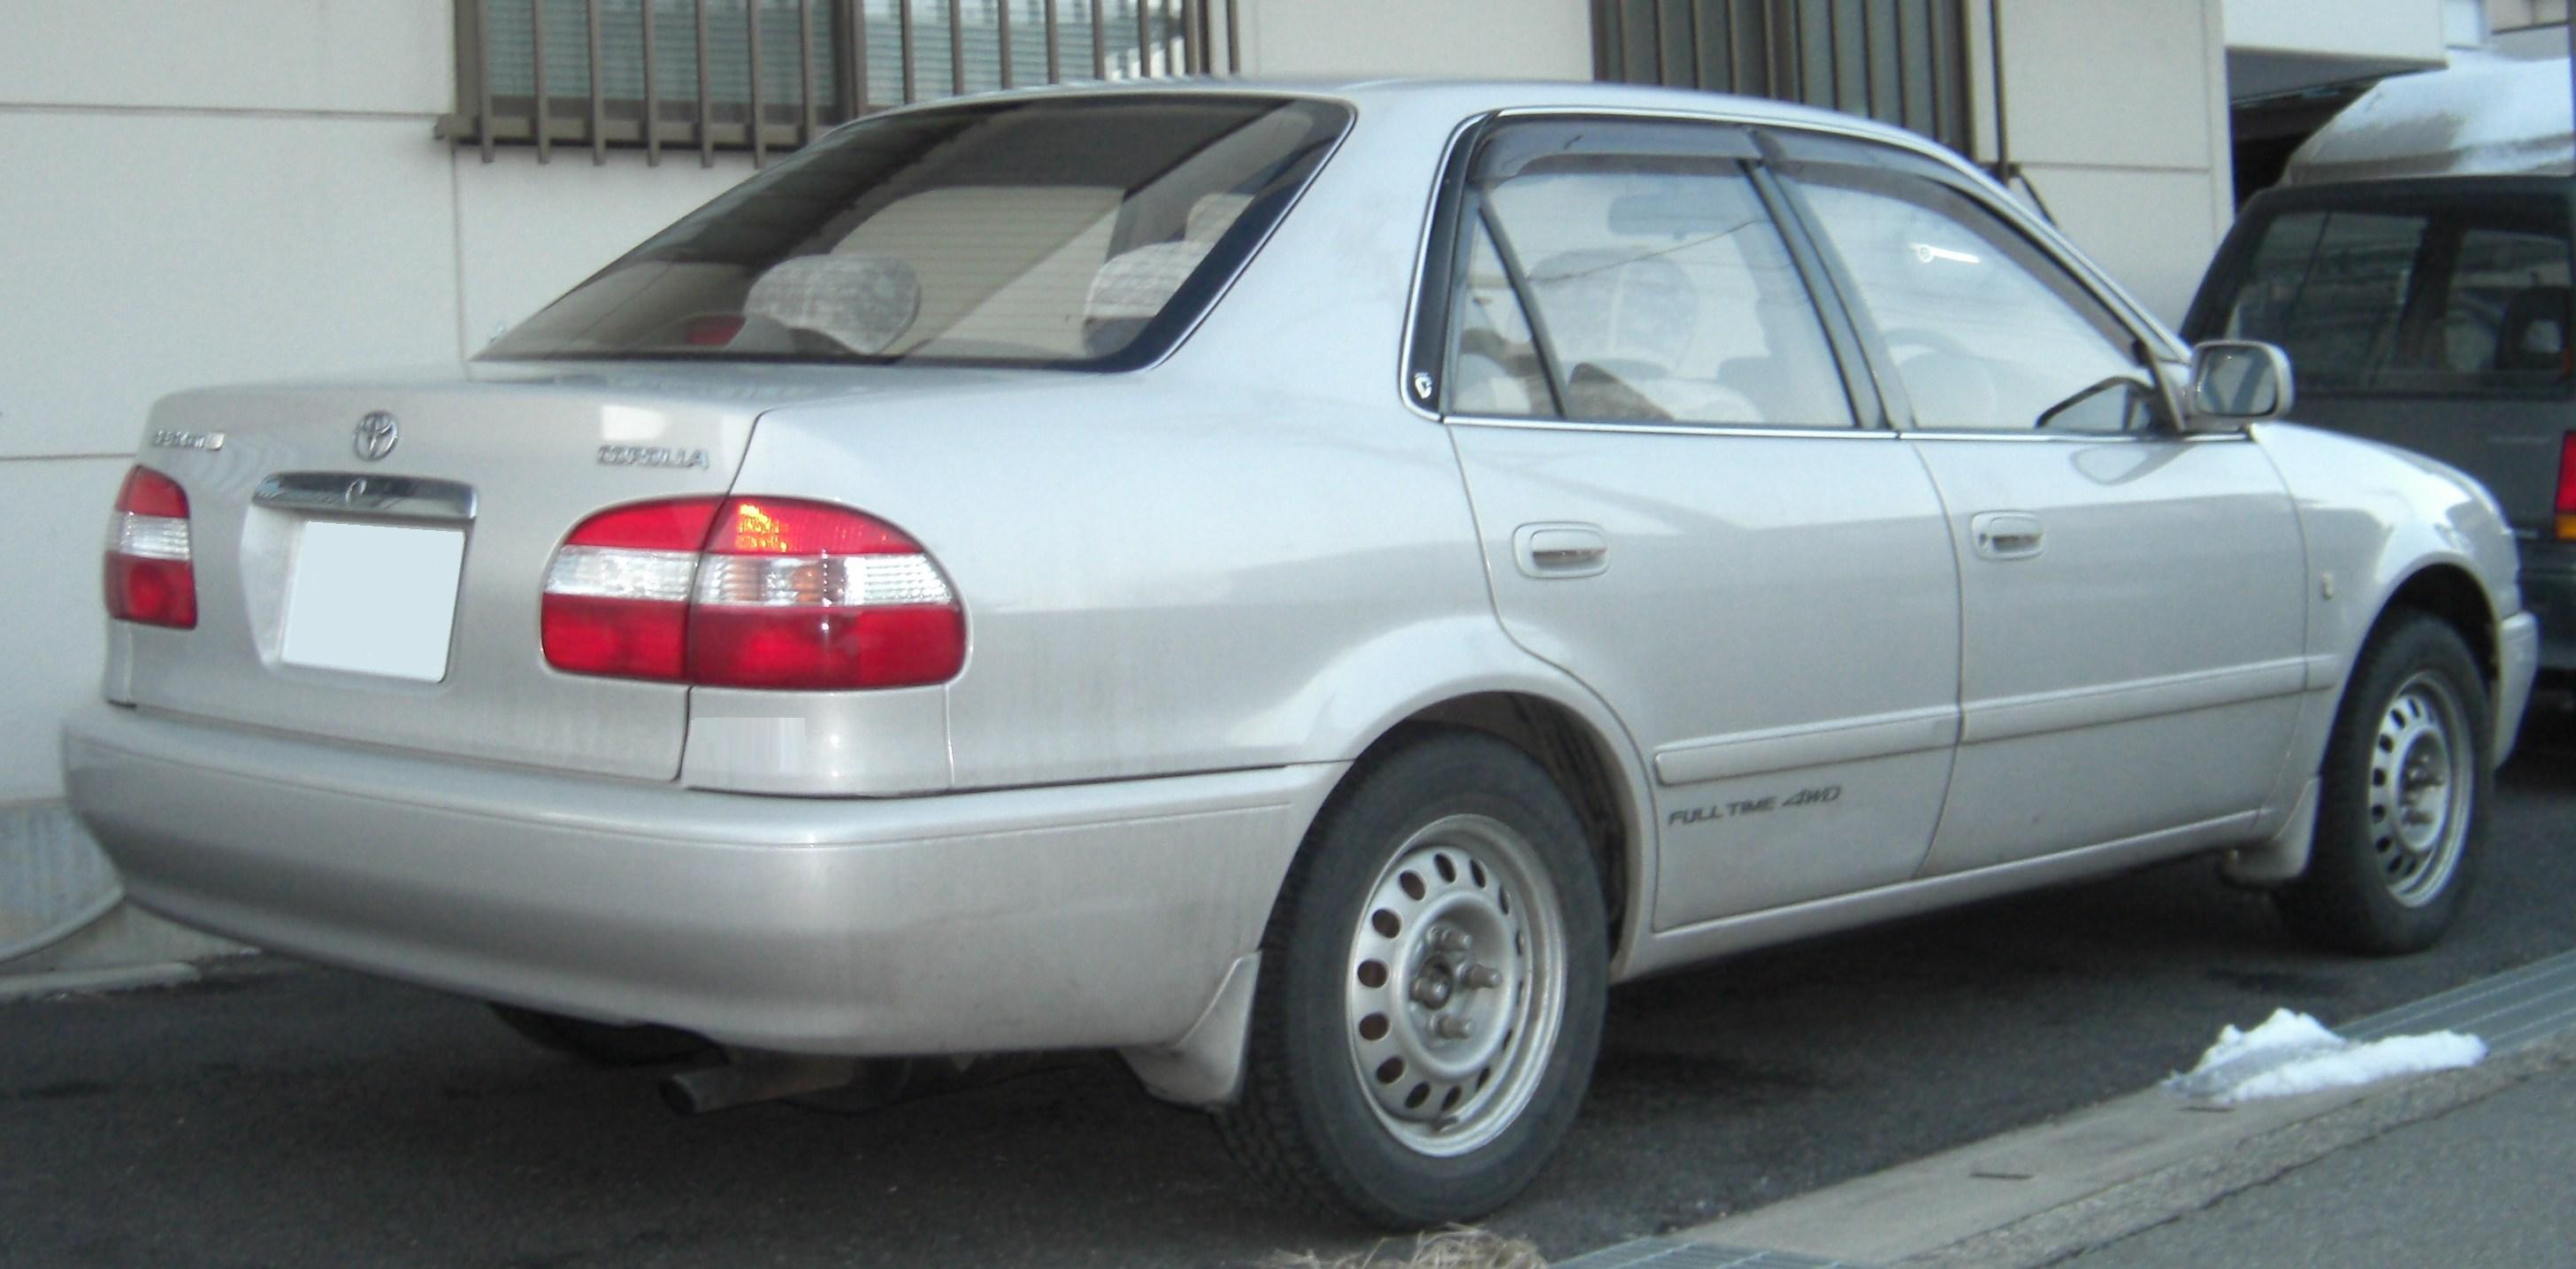 toyota corolla compact (e11) 1998 pictures